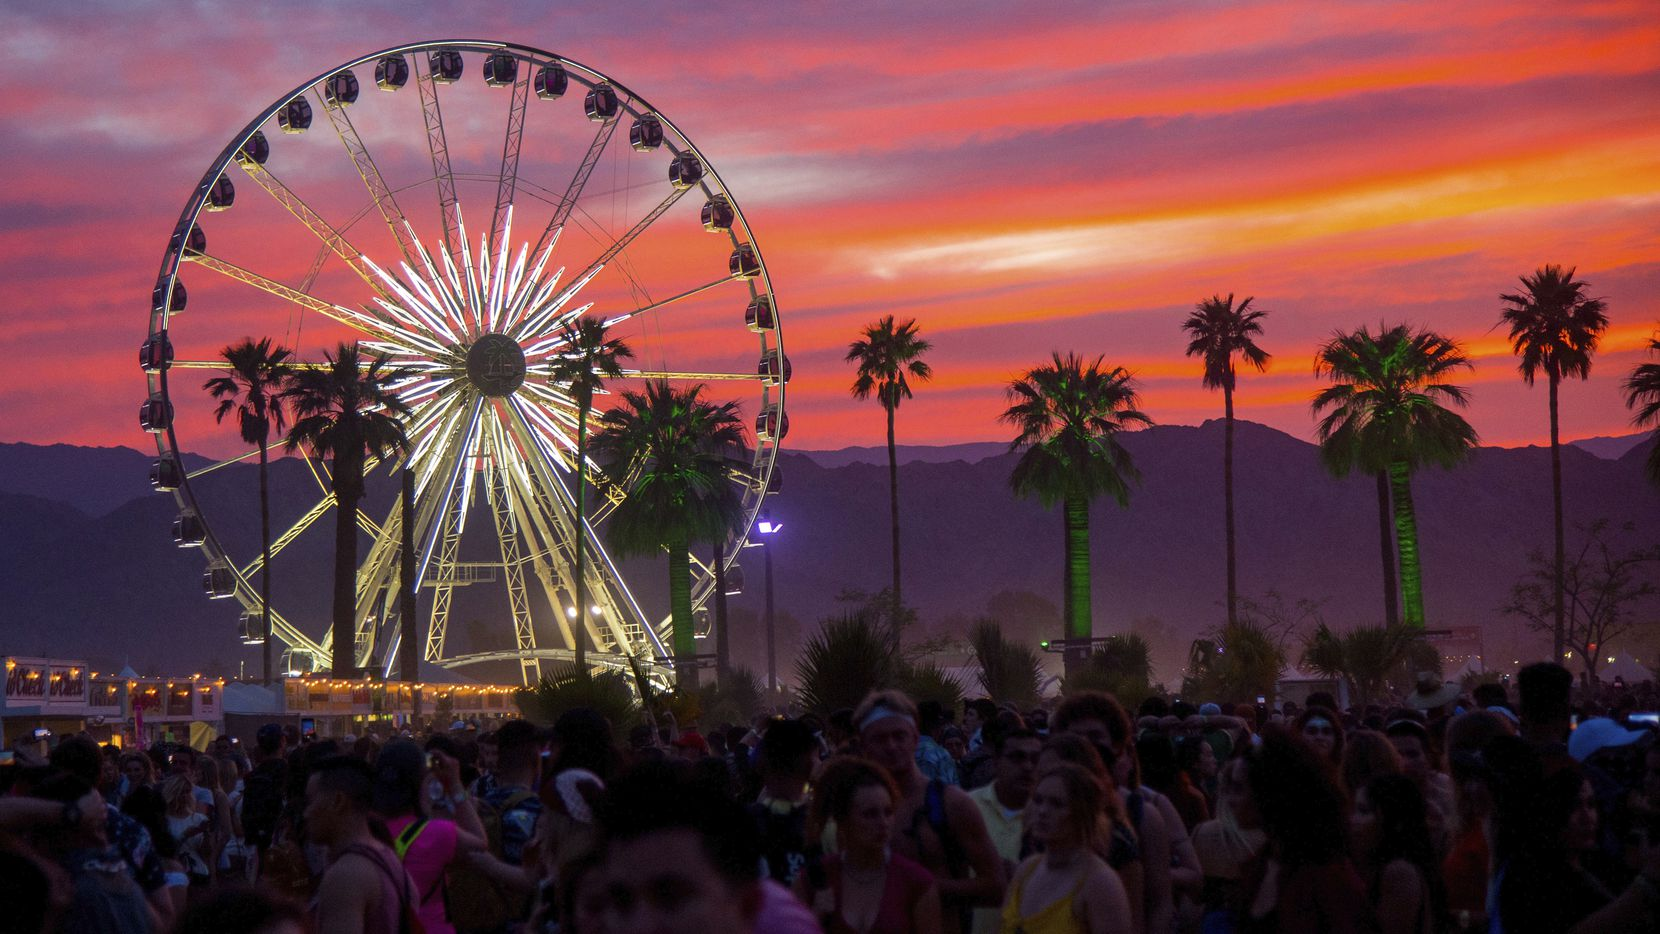 The sun set over the 2018 Coachella music and arts festival in Indio, Calif. The Coachella and Stagecoach festivals have been canceled this year because of the COVID-19 pandemic.